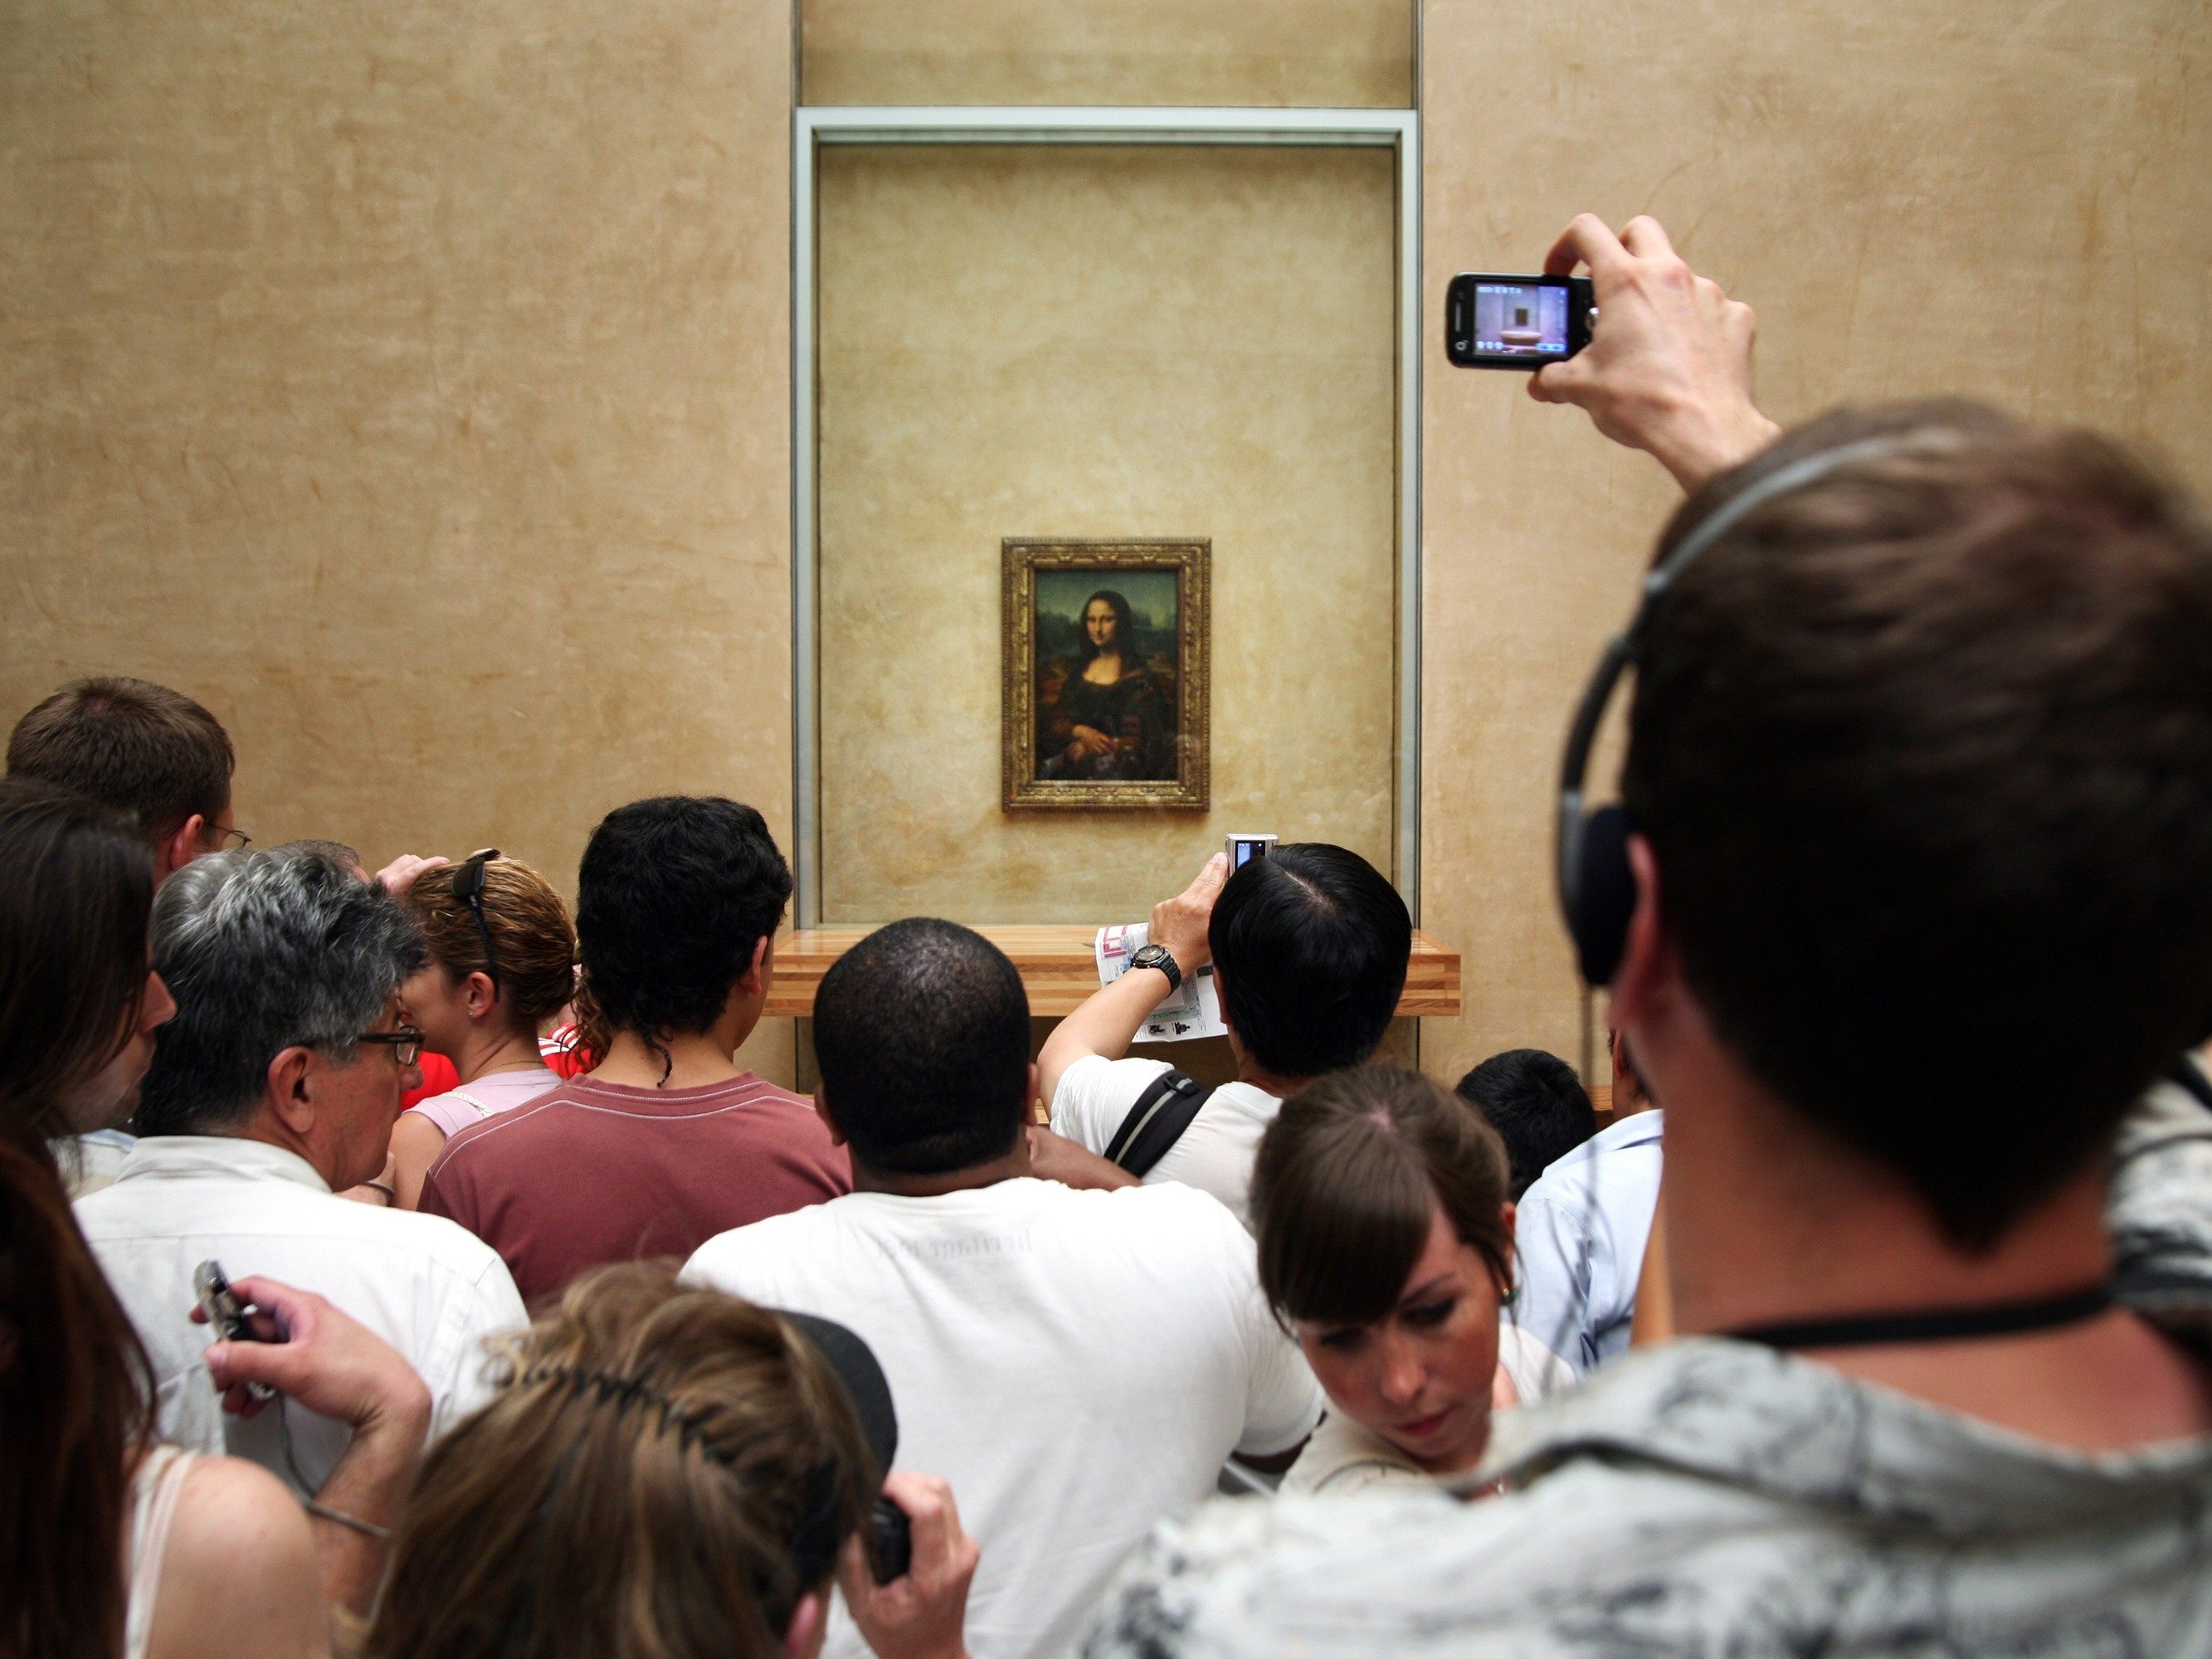 Mona Lisa mystery #1: Who was Mona Lisa?